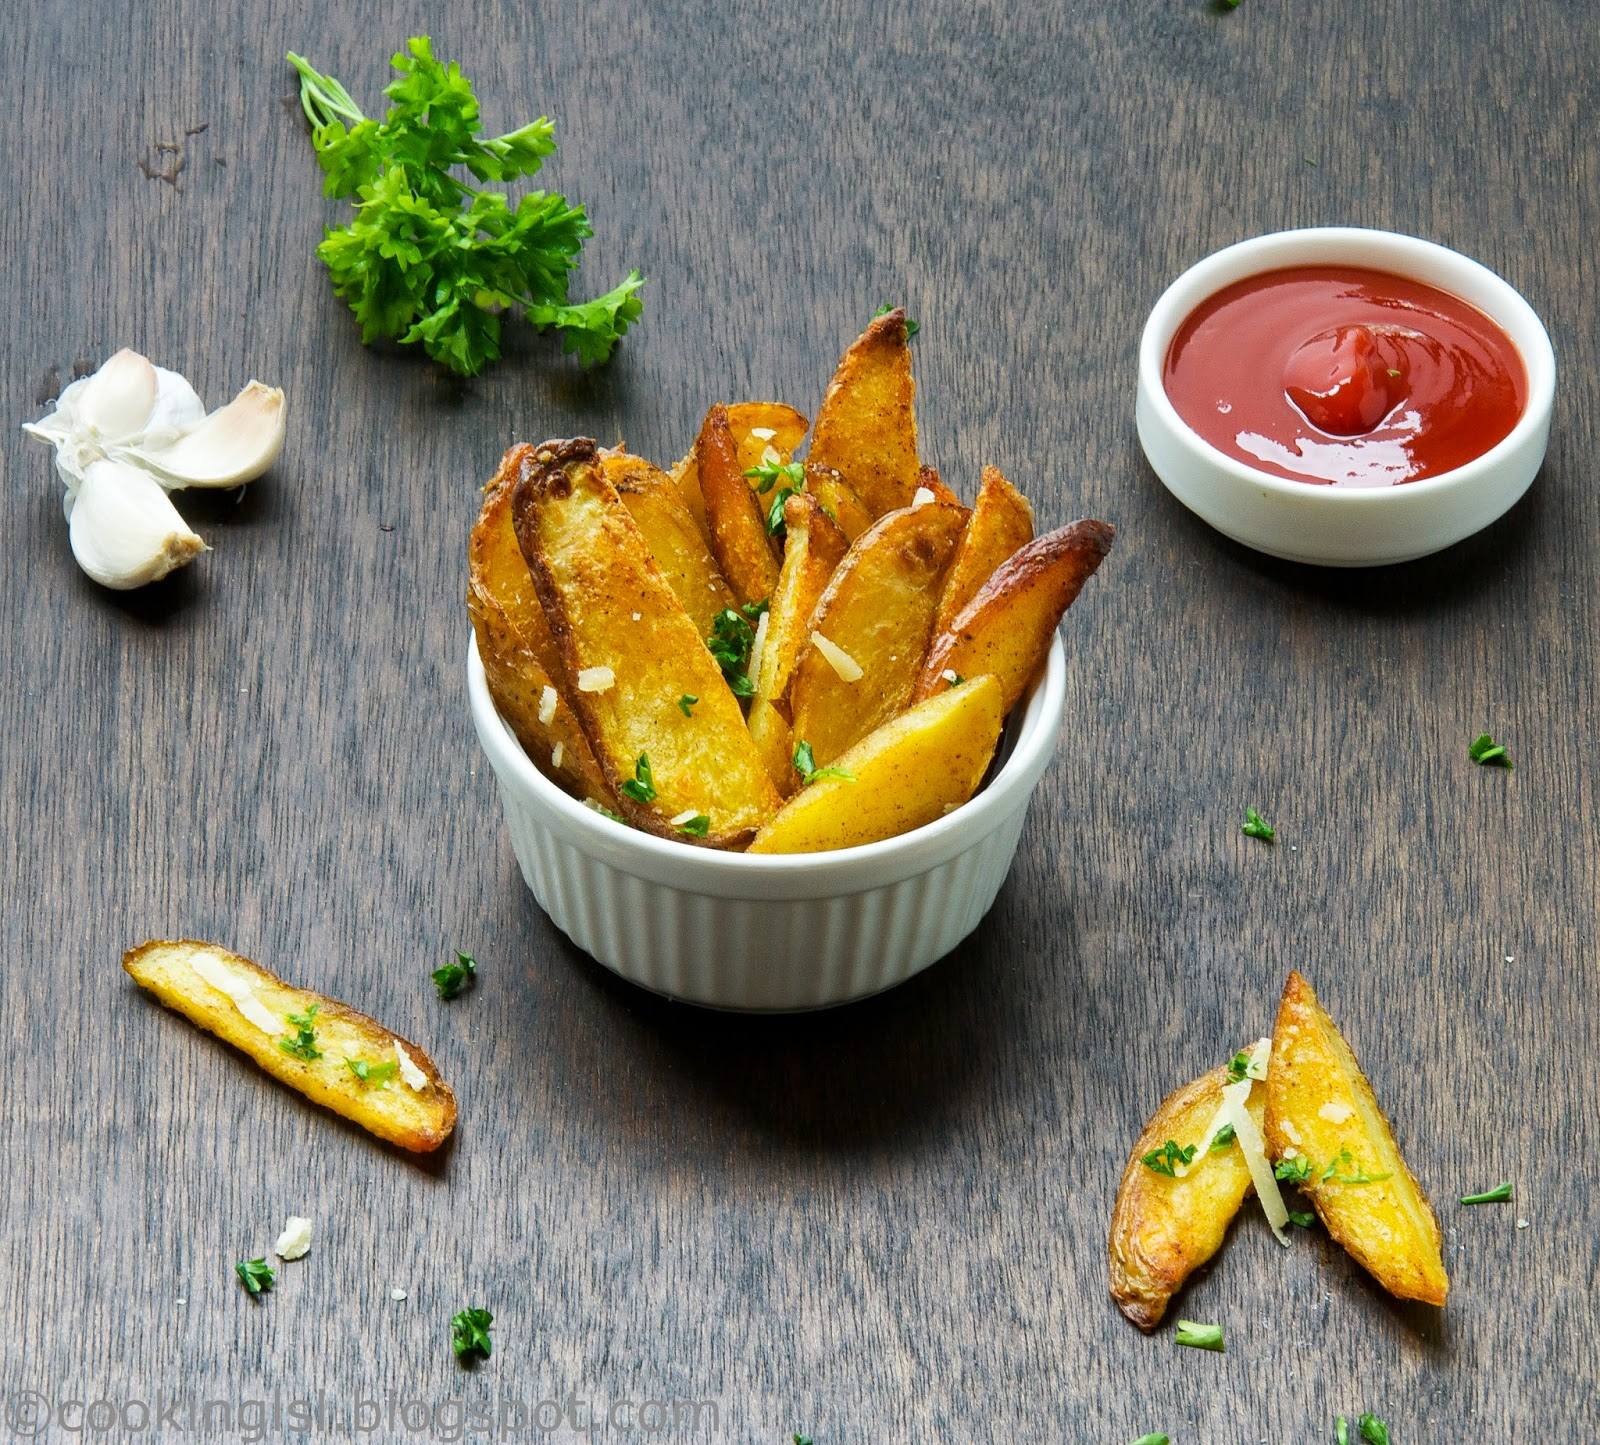 oven-baked-garlic-fries